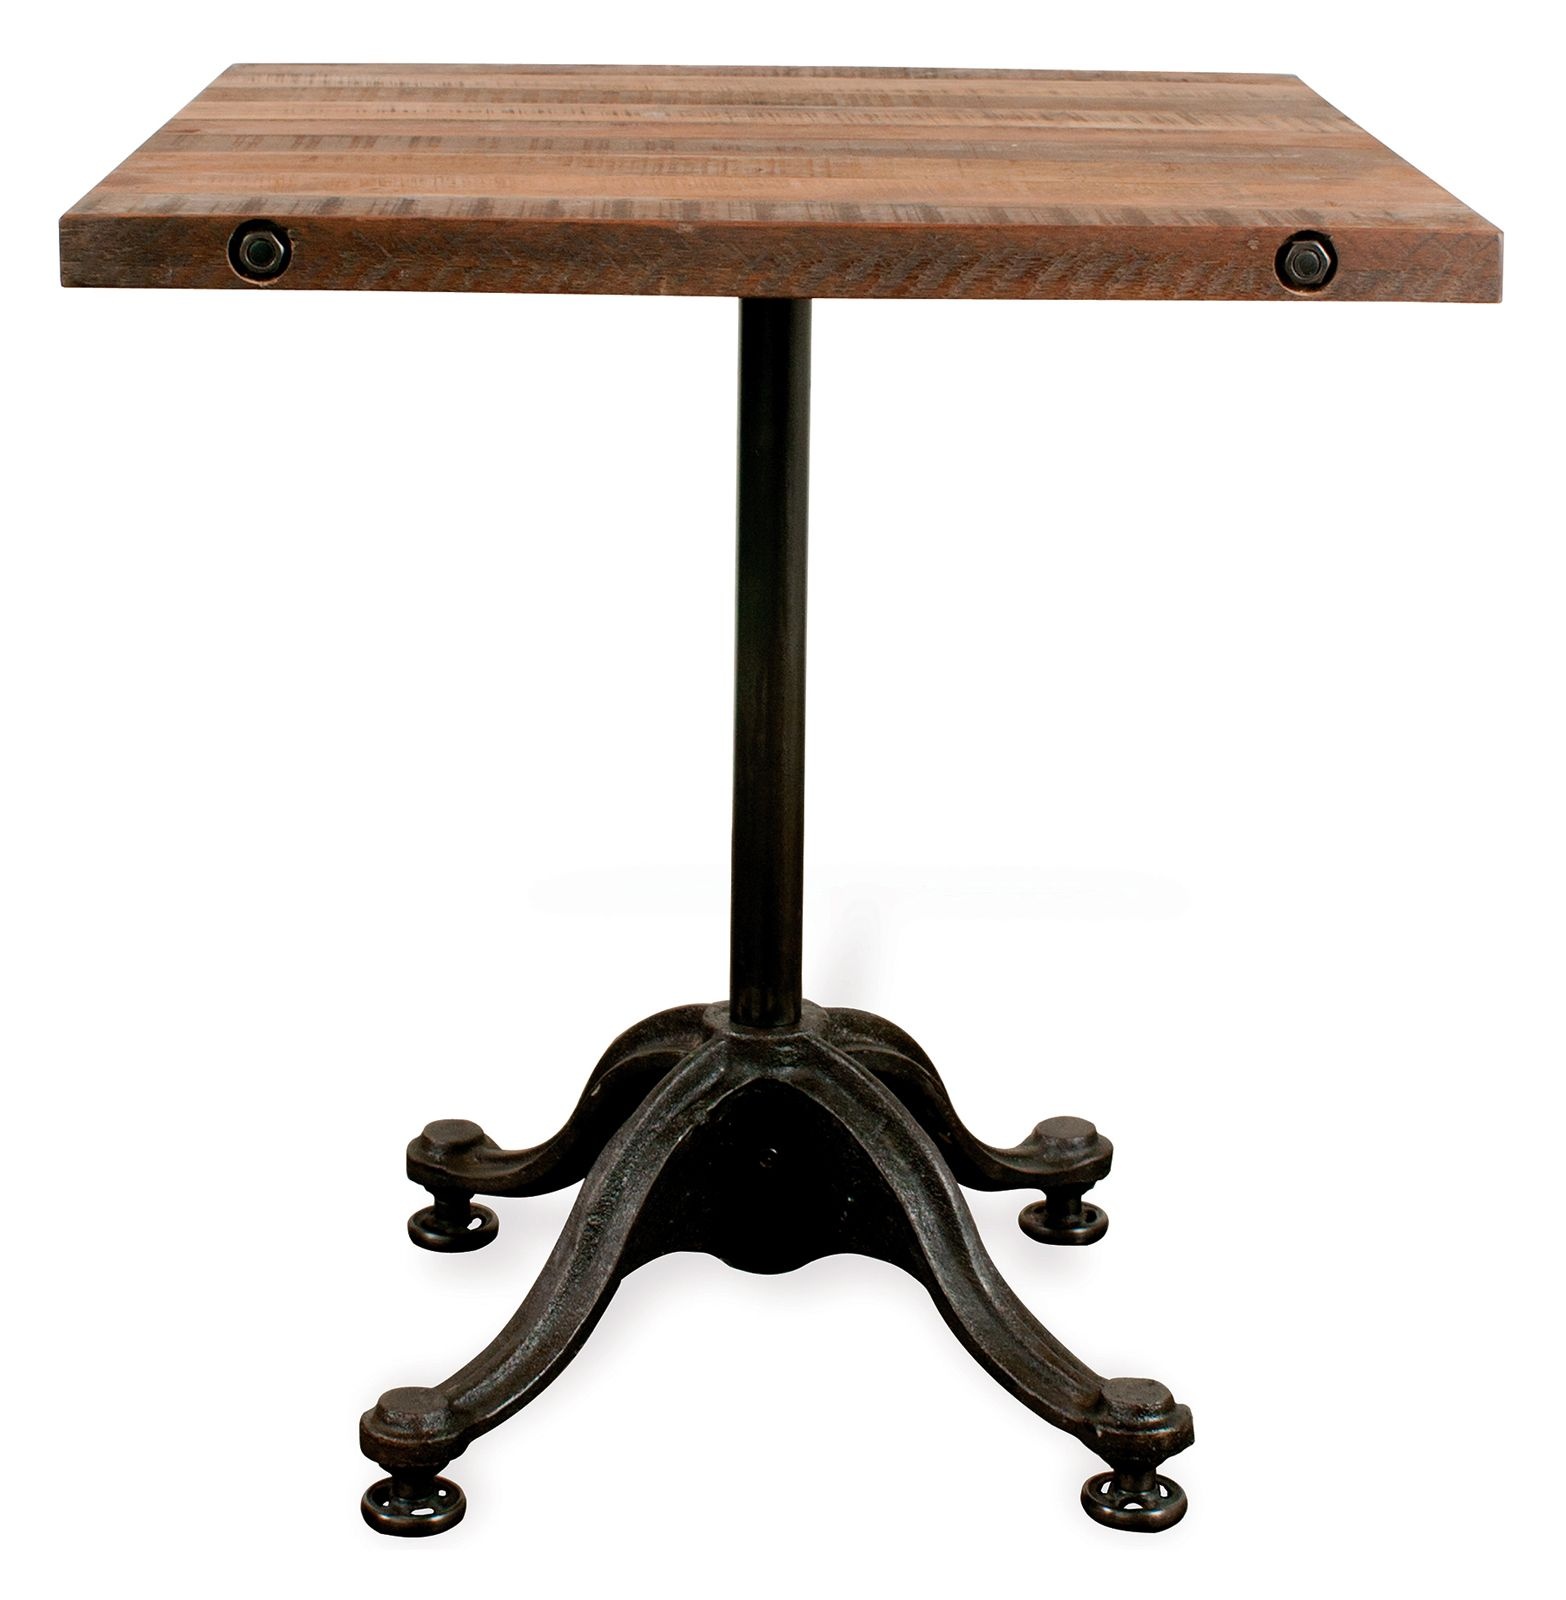 Vr42 Reclaimed Wood Industrial Square Bistro Cafe Dining Table By